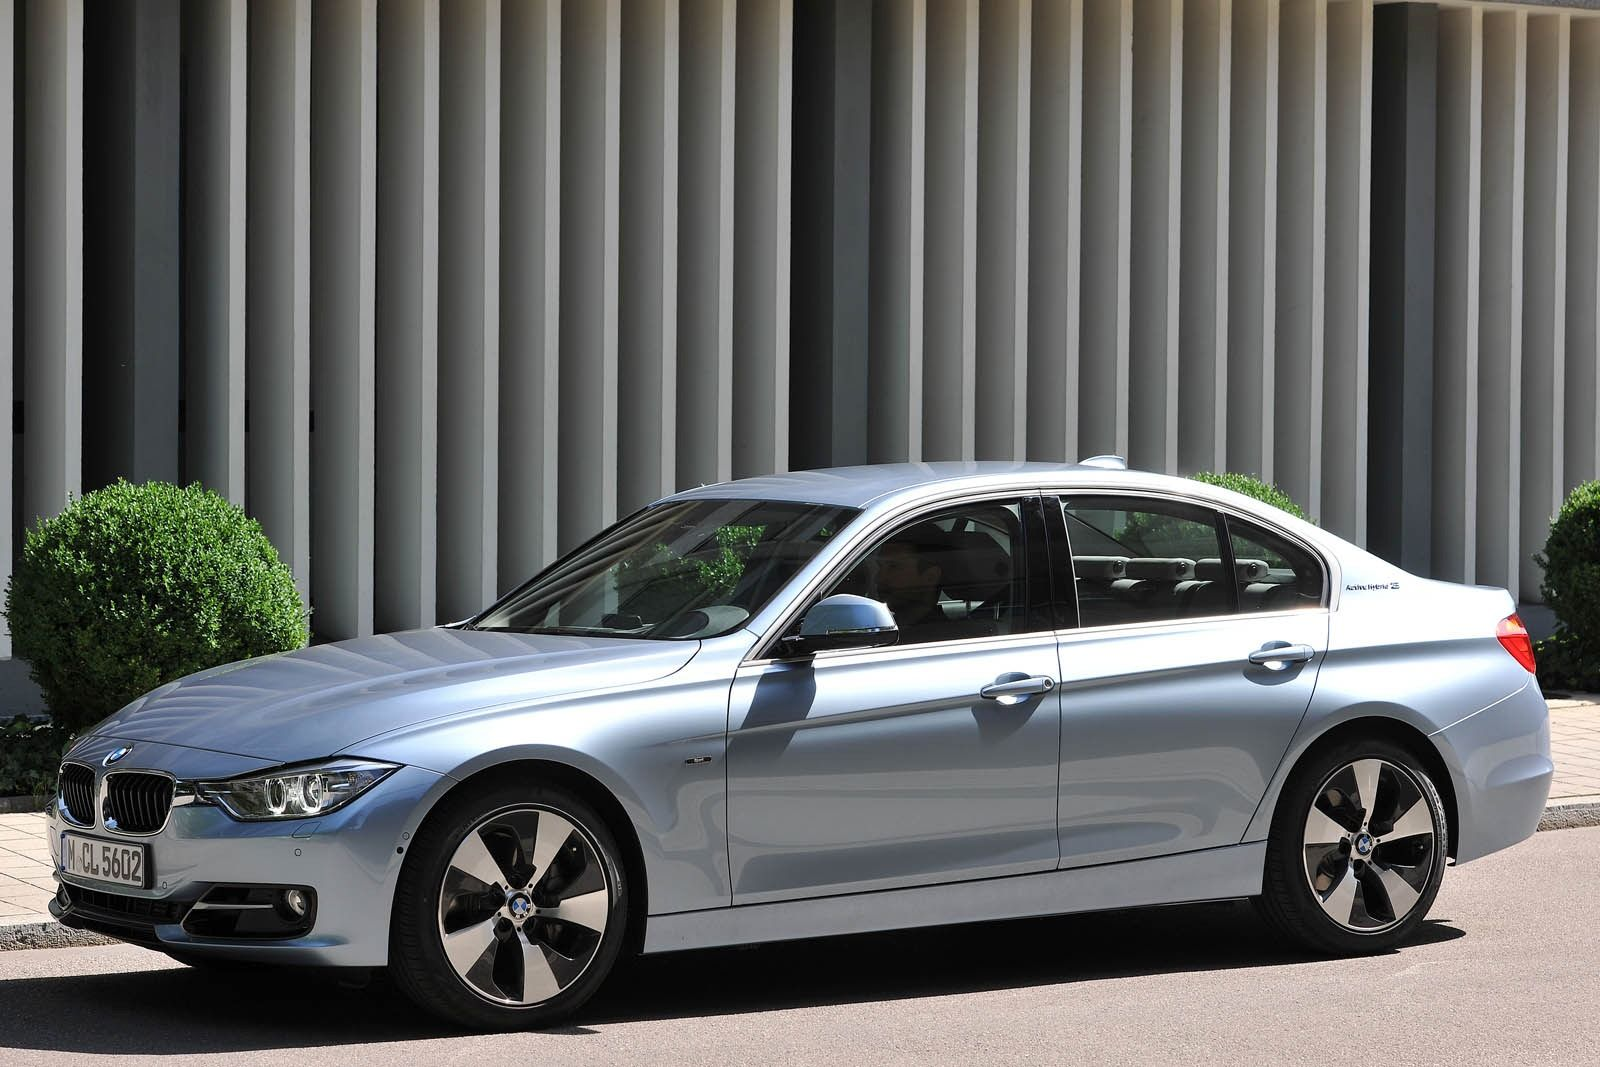 2015 Bmw Activehybrid 5 #3